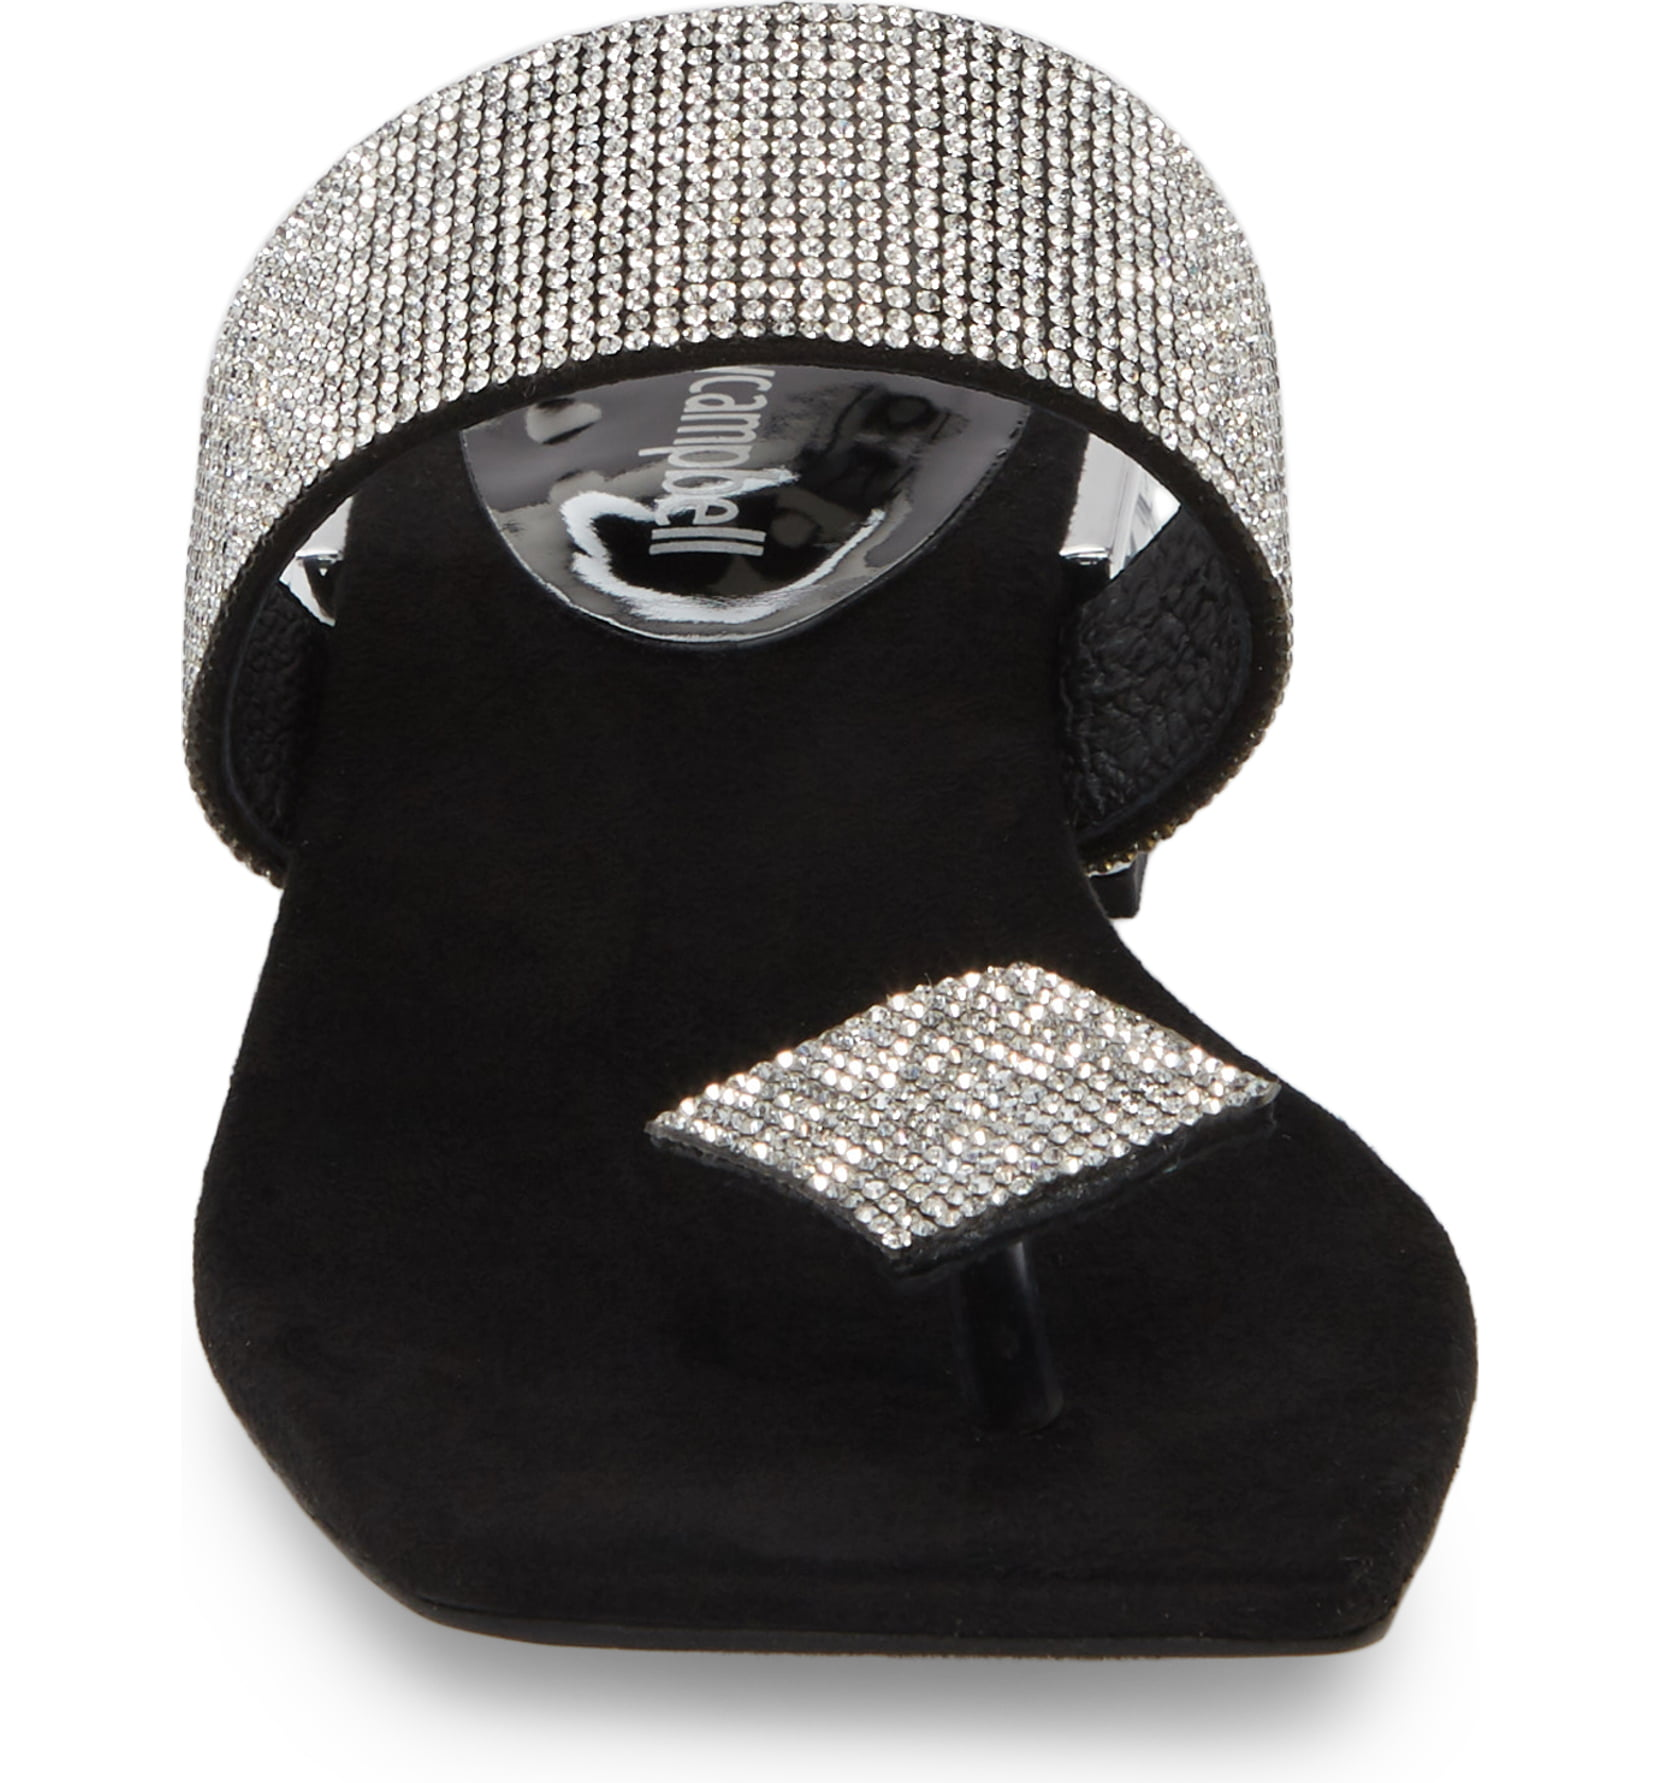 Jeffery-Campbell-ALISE-SH-Black-Silver-Embellished-Sandal-Jeweled-Square-Heel thumbnail 42